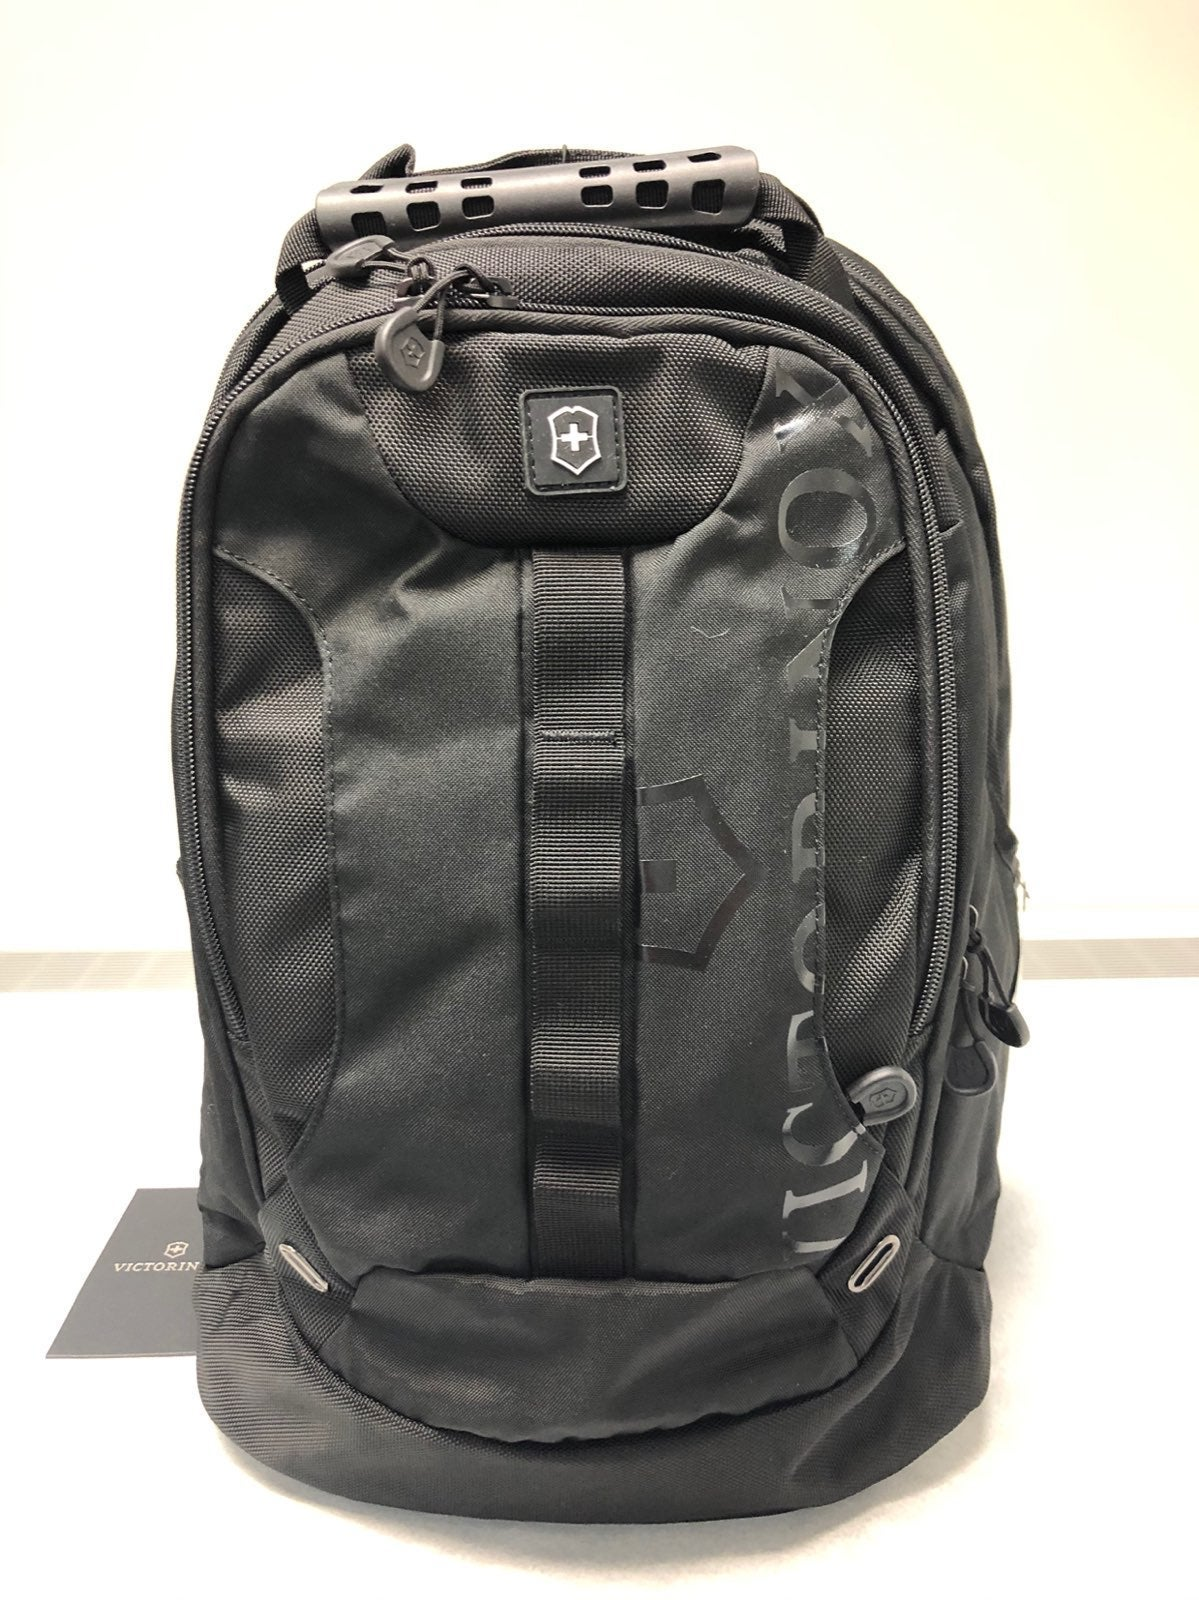 Victorinox swiss army backpack